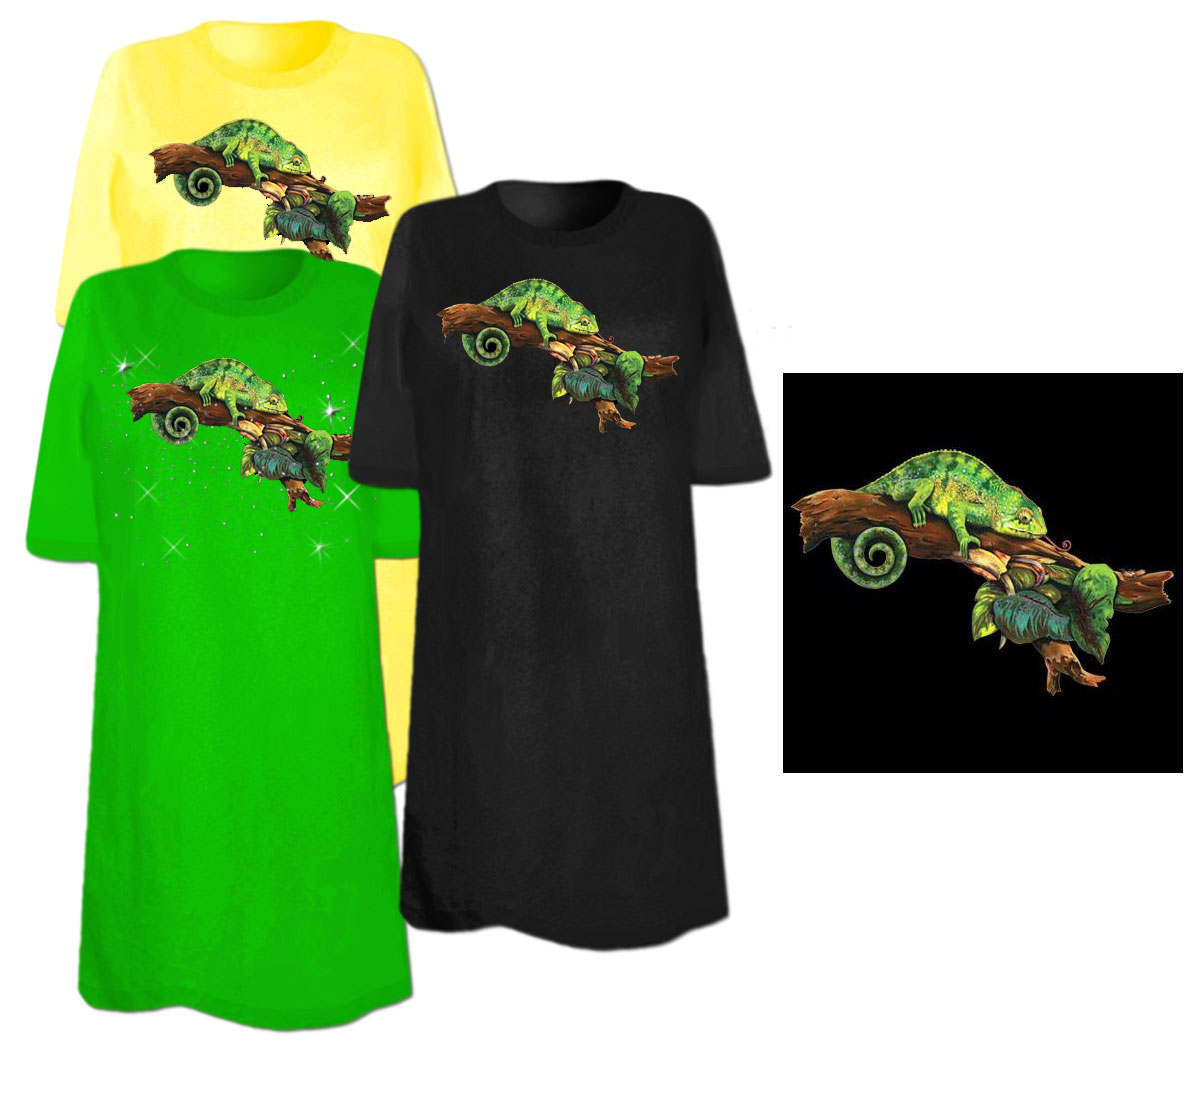 Sale chameleon branch plus size supersize t shirts s m for 3x shirts on sale